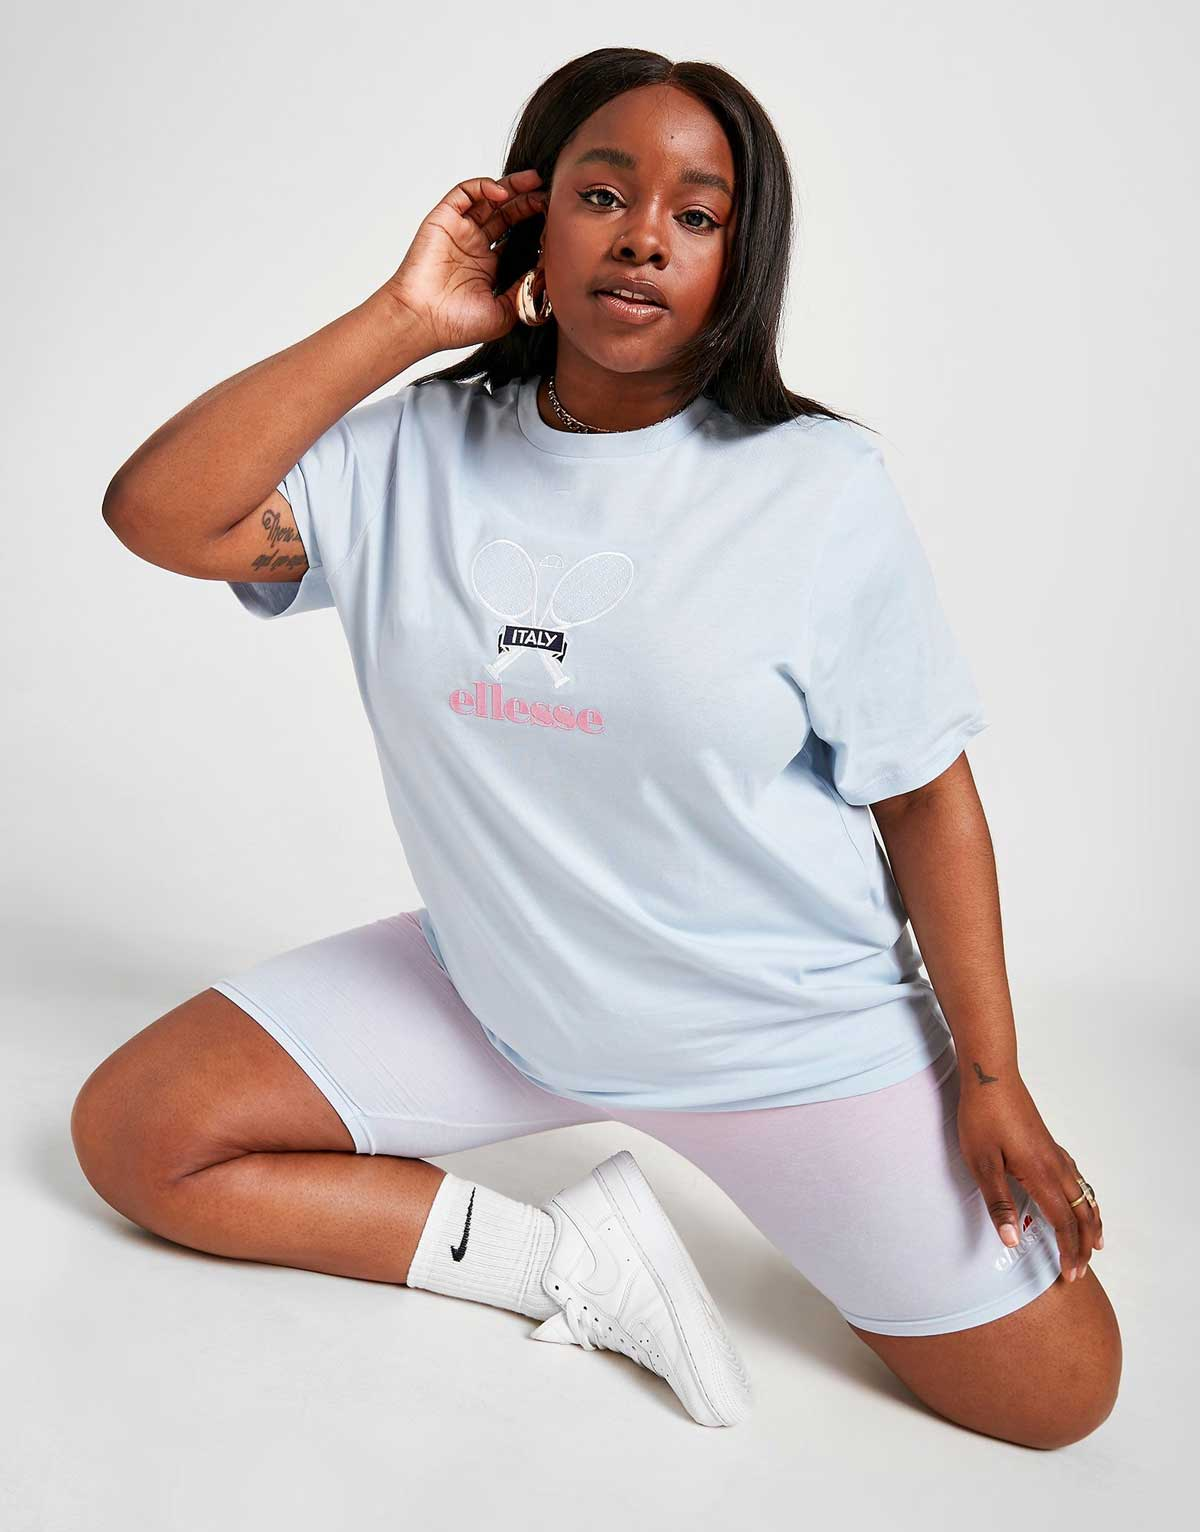 Plus Sized T-Shirts for the Spring You Must Get